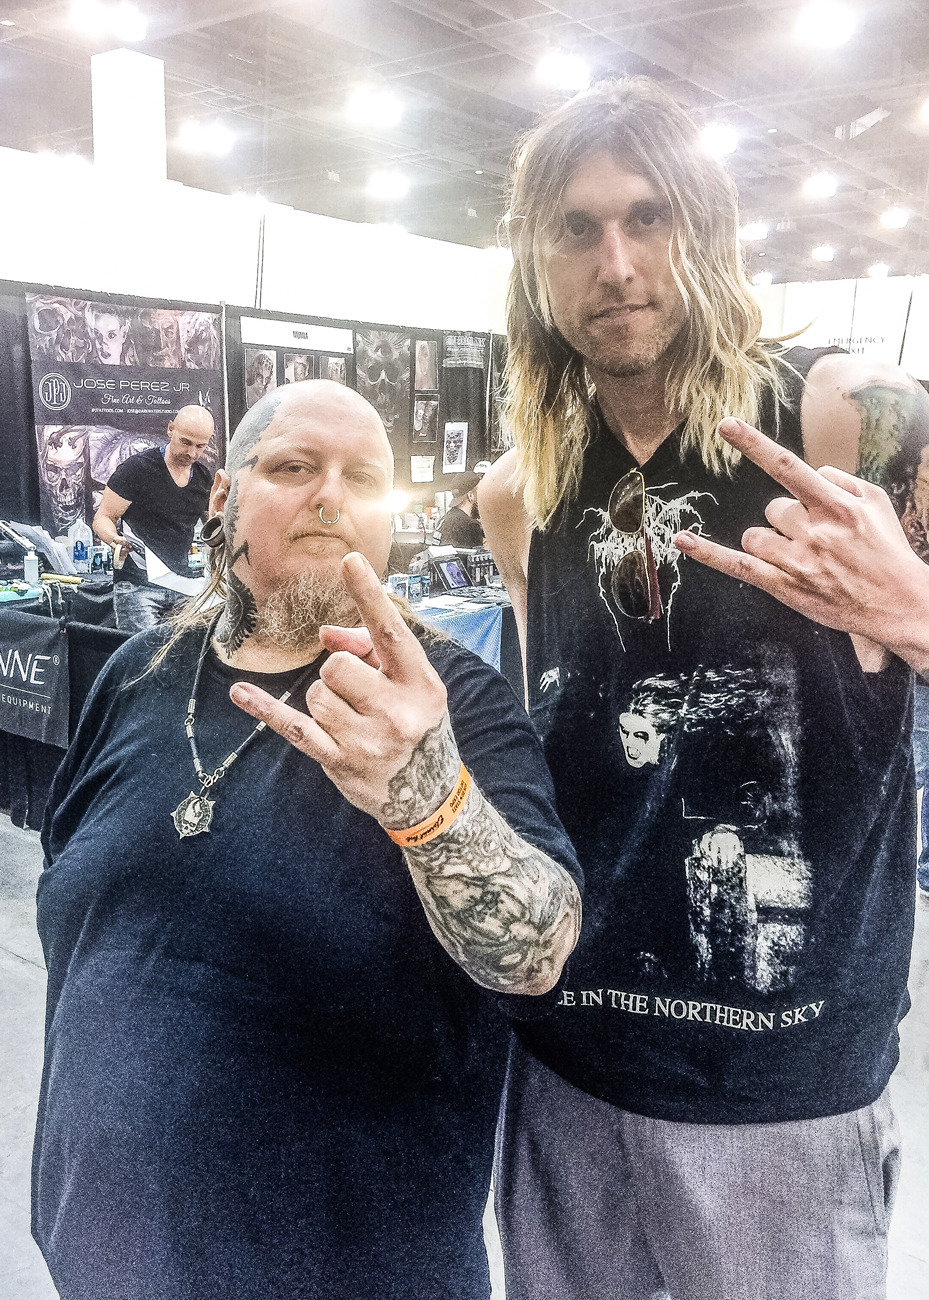 Master Tattoo Artist + NYC Last Rites Gallery Owner Paul Booth and Artist + Dark Fashion Photographer Bryan Barnes,  Golden State Tattoo Expo - Pasadena, CA January 2016